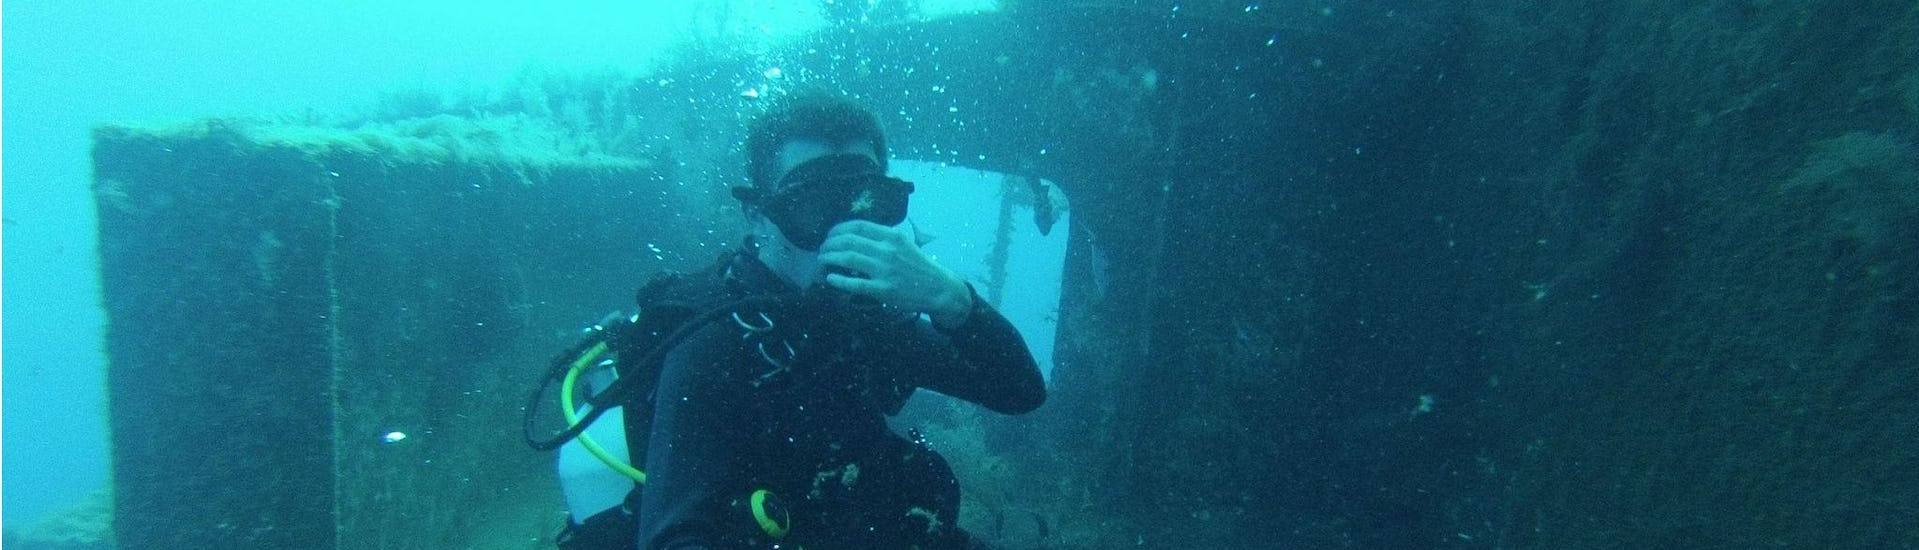 Scuba Diving - Guided Day Trips from Peyia